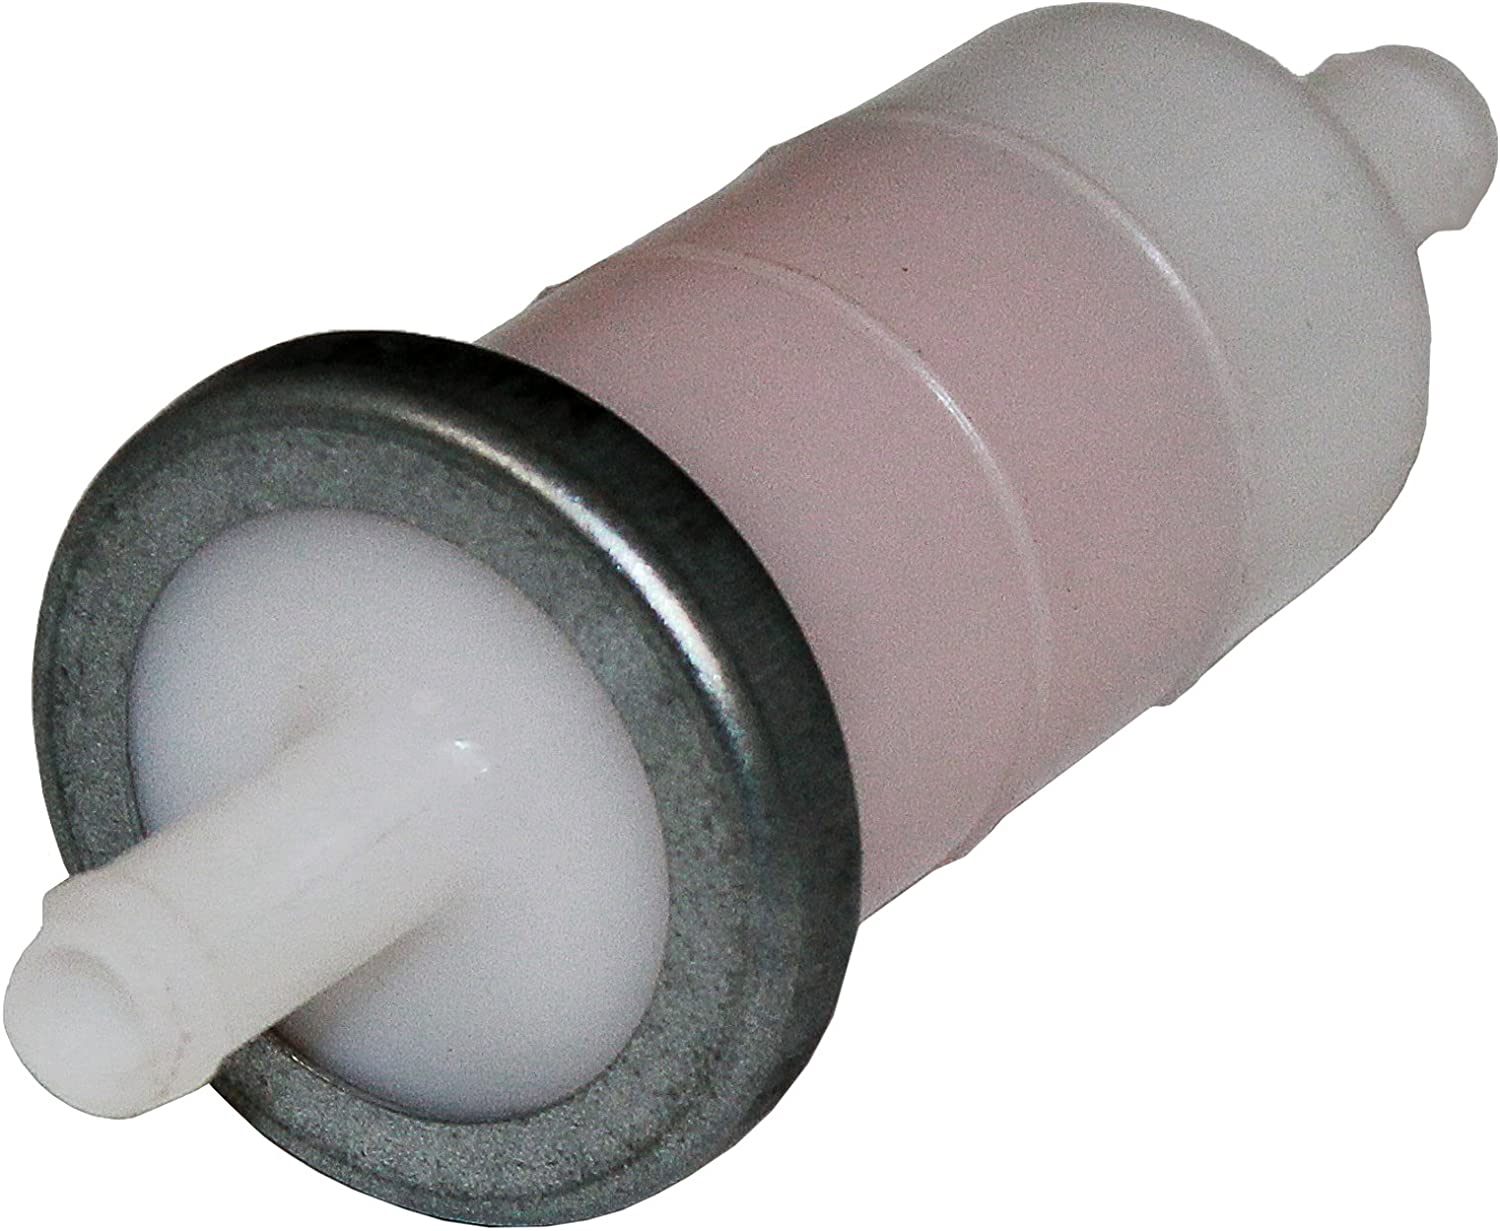 Amazon.com: Caltric Fuel Filter Compatible With Honda Vt750Cd Shadow Ace  Deluxe 1999-2003: AutomotiveAmazon.com